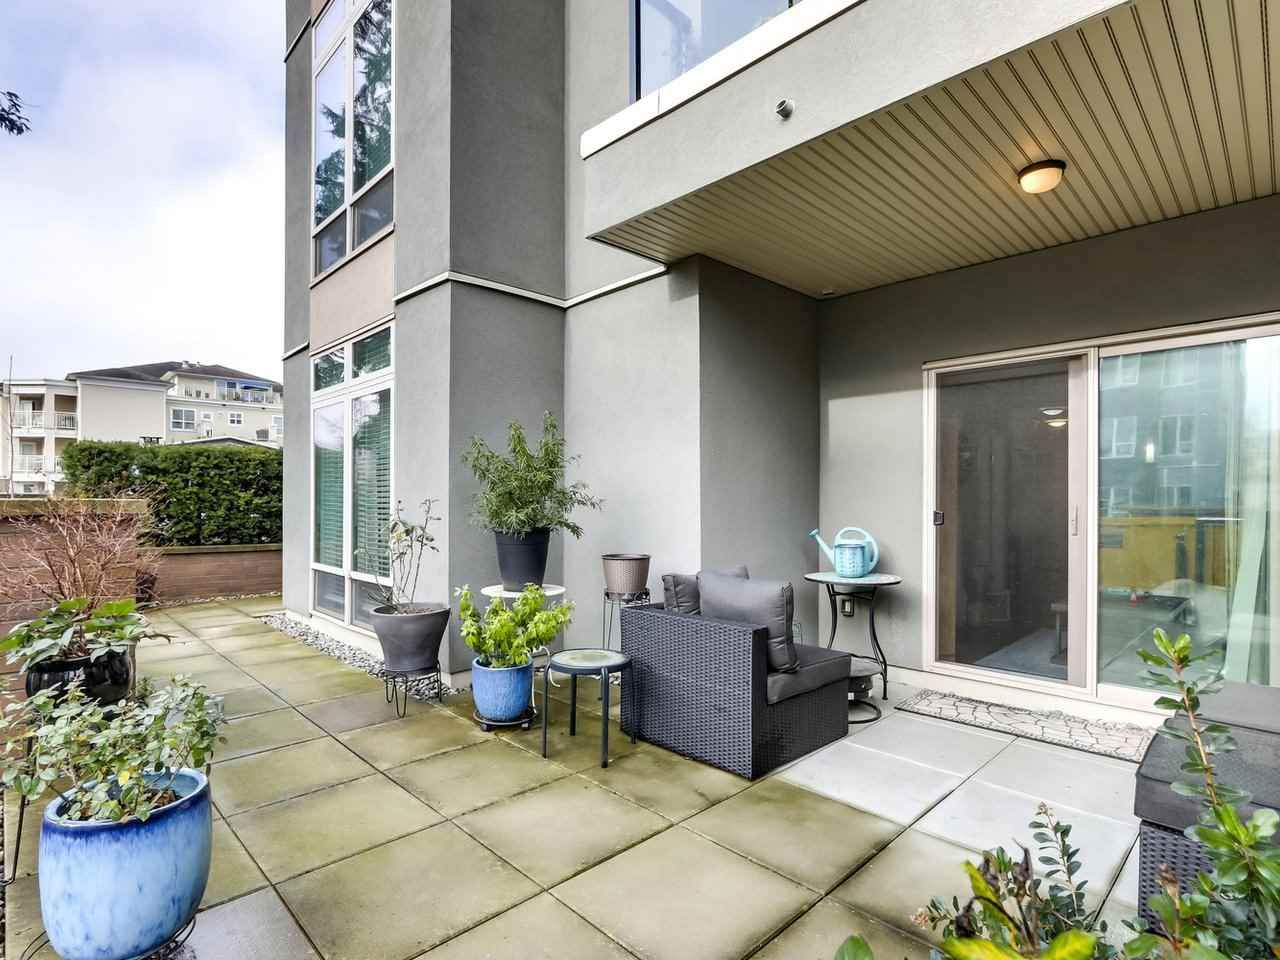 """Main Photo: 102 2349 WELCHER Avenue in Port Coquitlam: Central Pt Coquitlam Condo for sale in """"ALTURA"""" : MLS®# R2529816"""